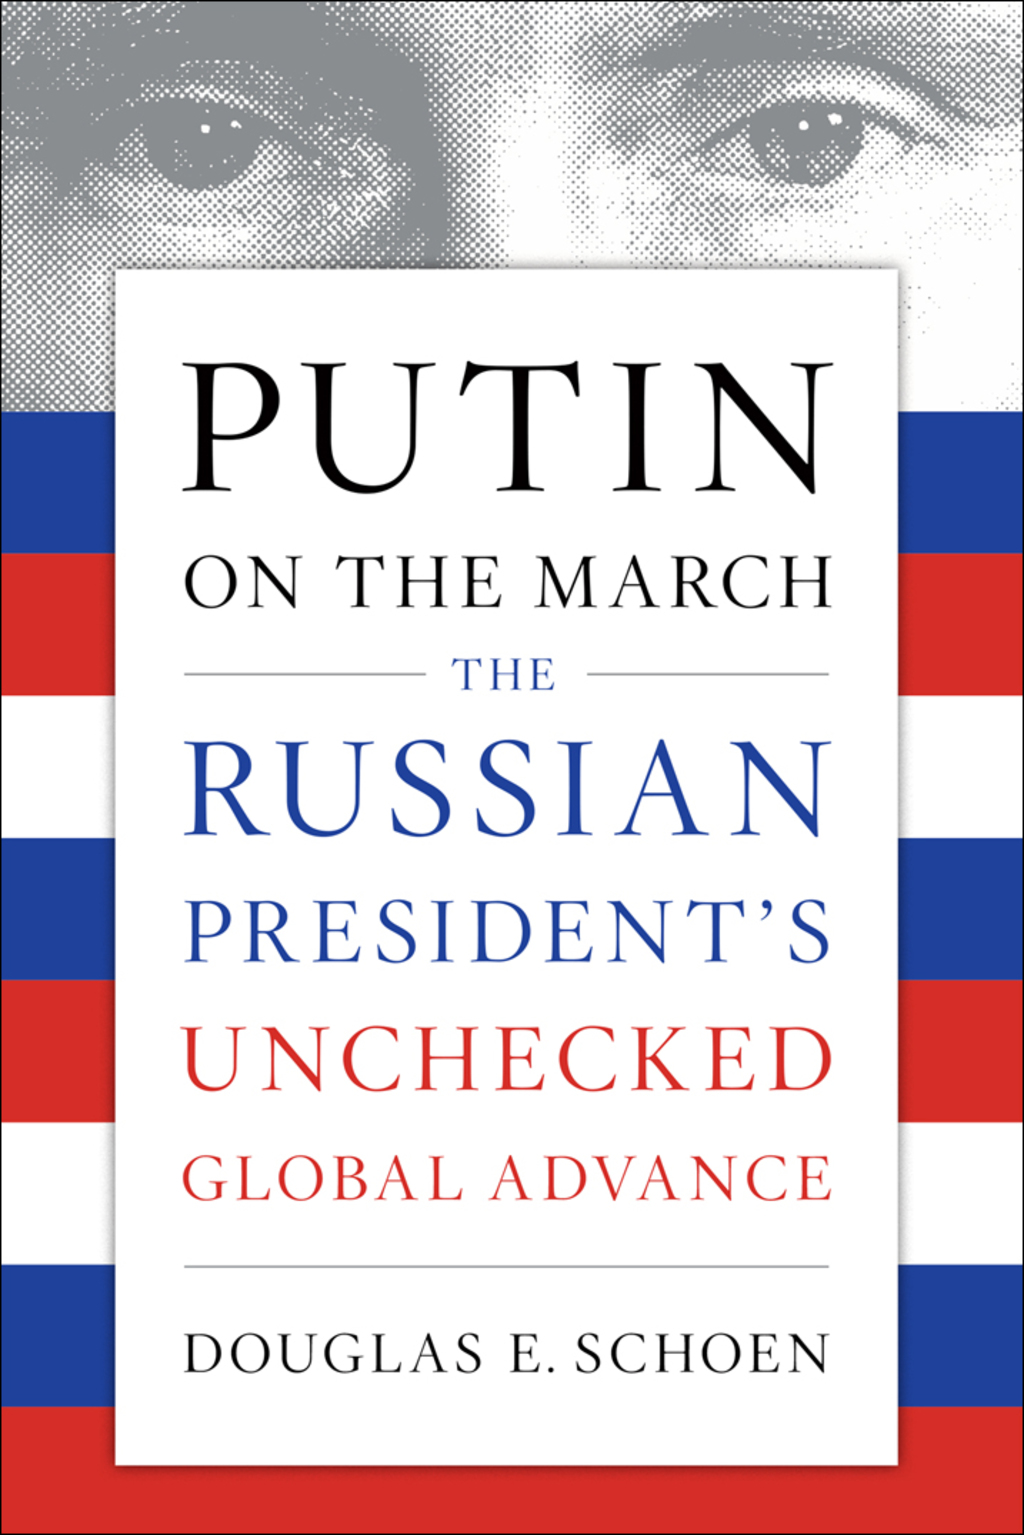 Putin on the March (eBook)